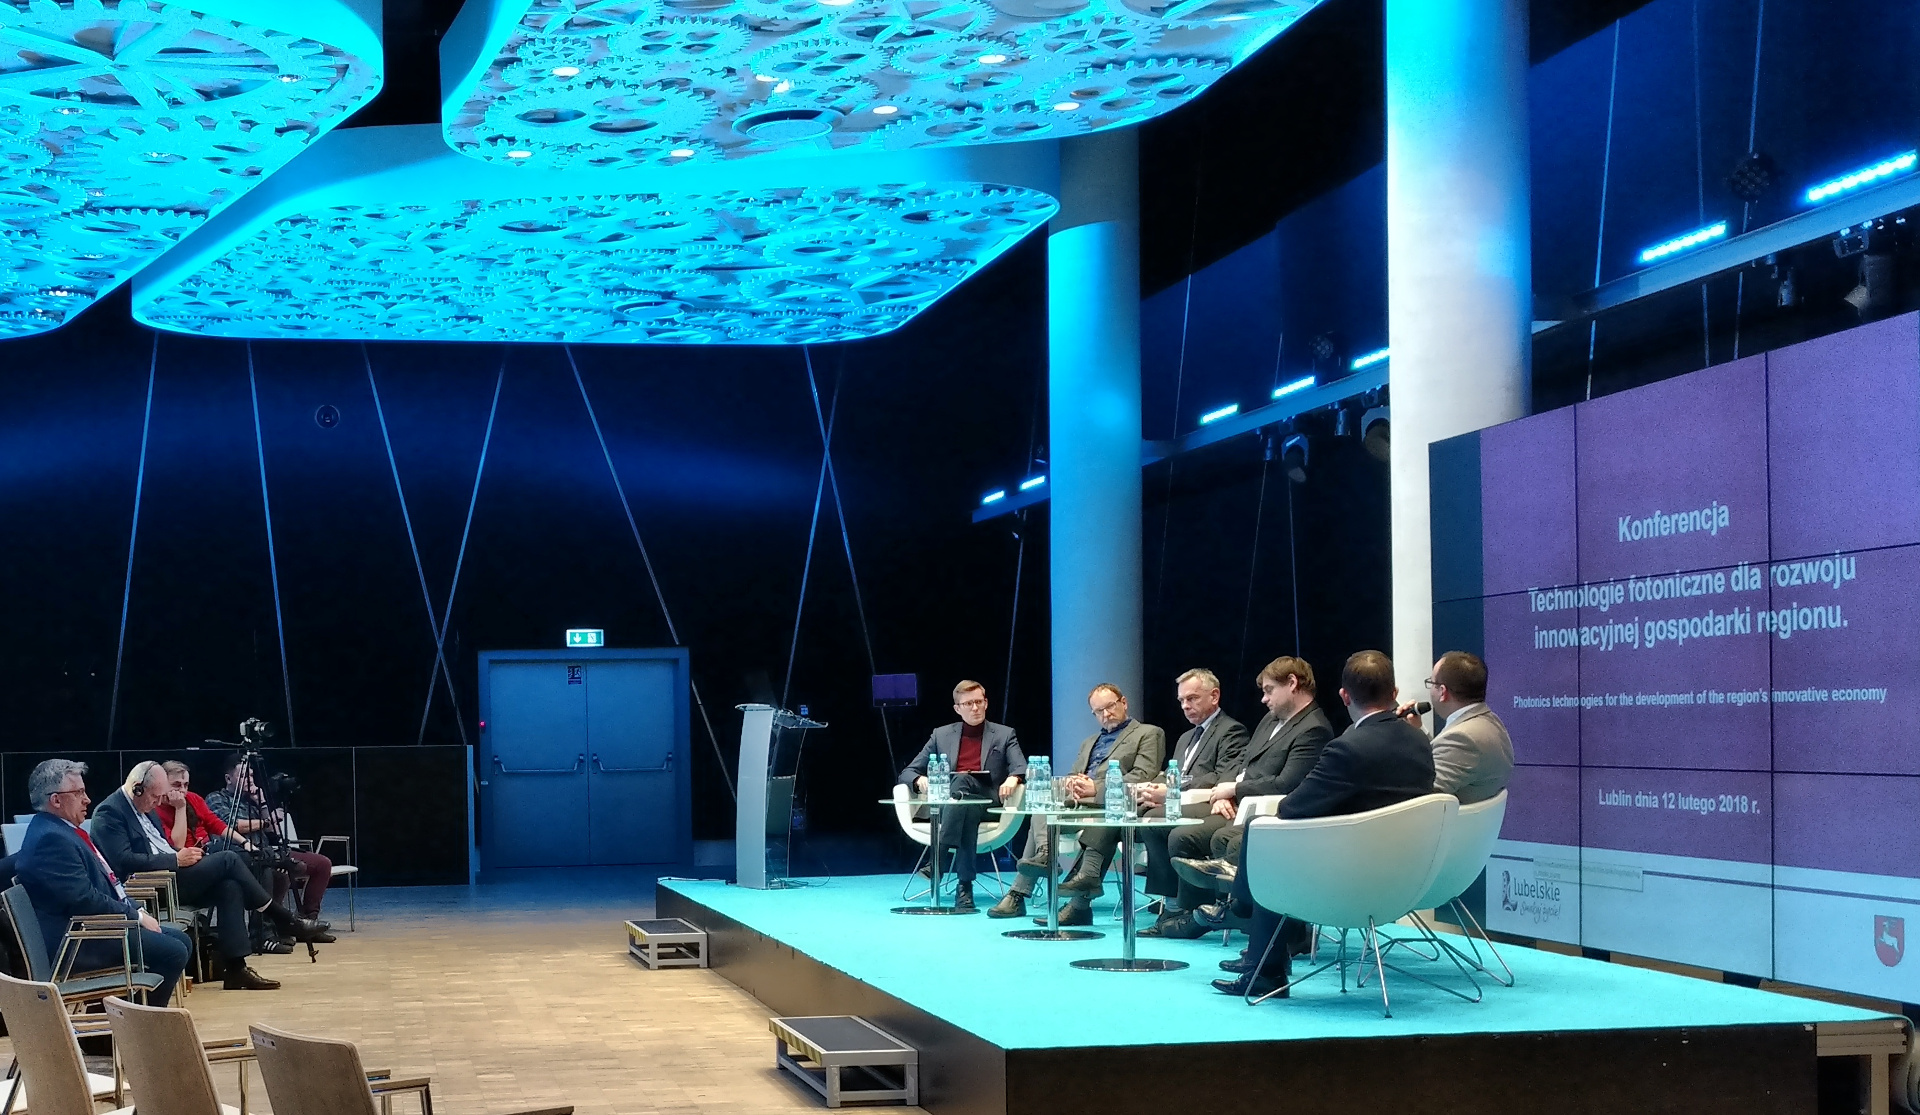 Tomasz Niedziałek, the CEO of EMBIQ and PhD. Eng. Wojciech Surtel took part in an expert discussion about photonics